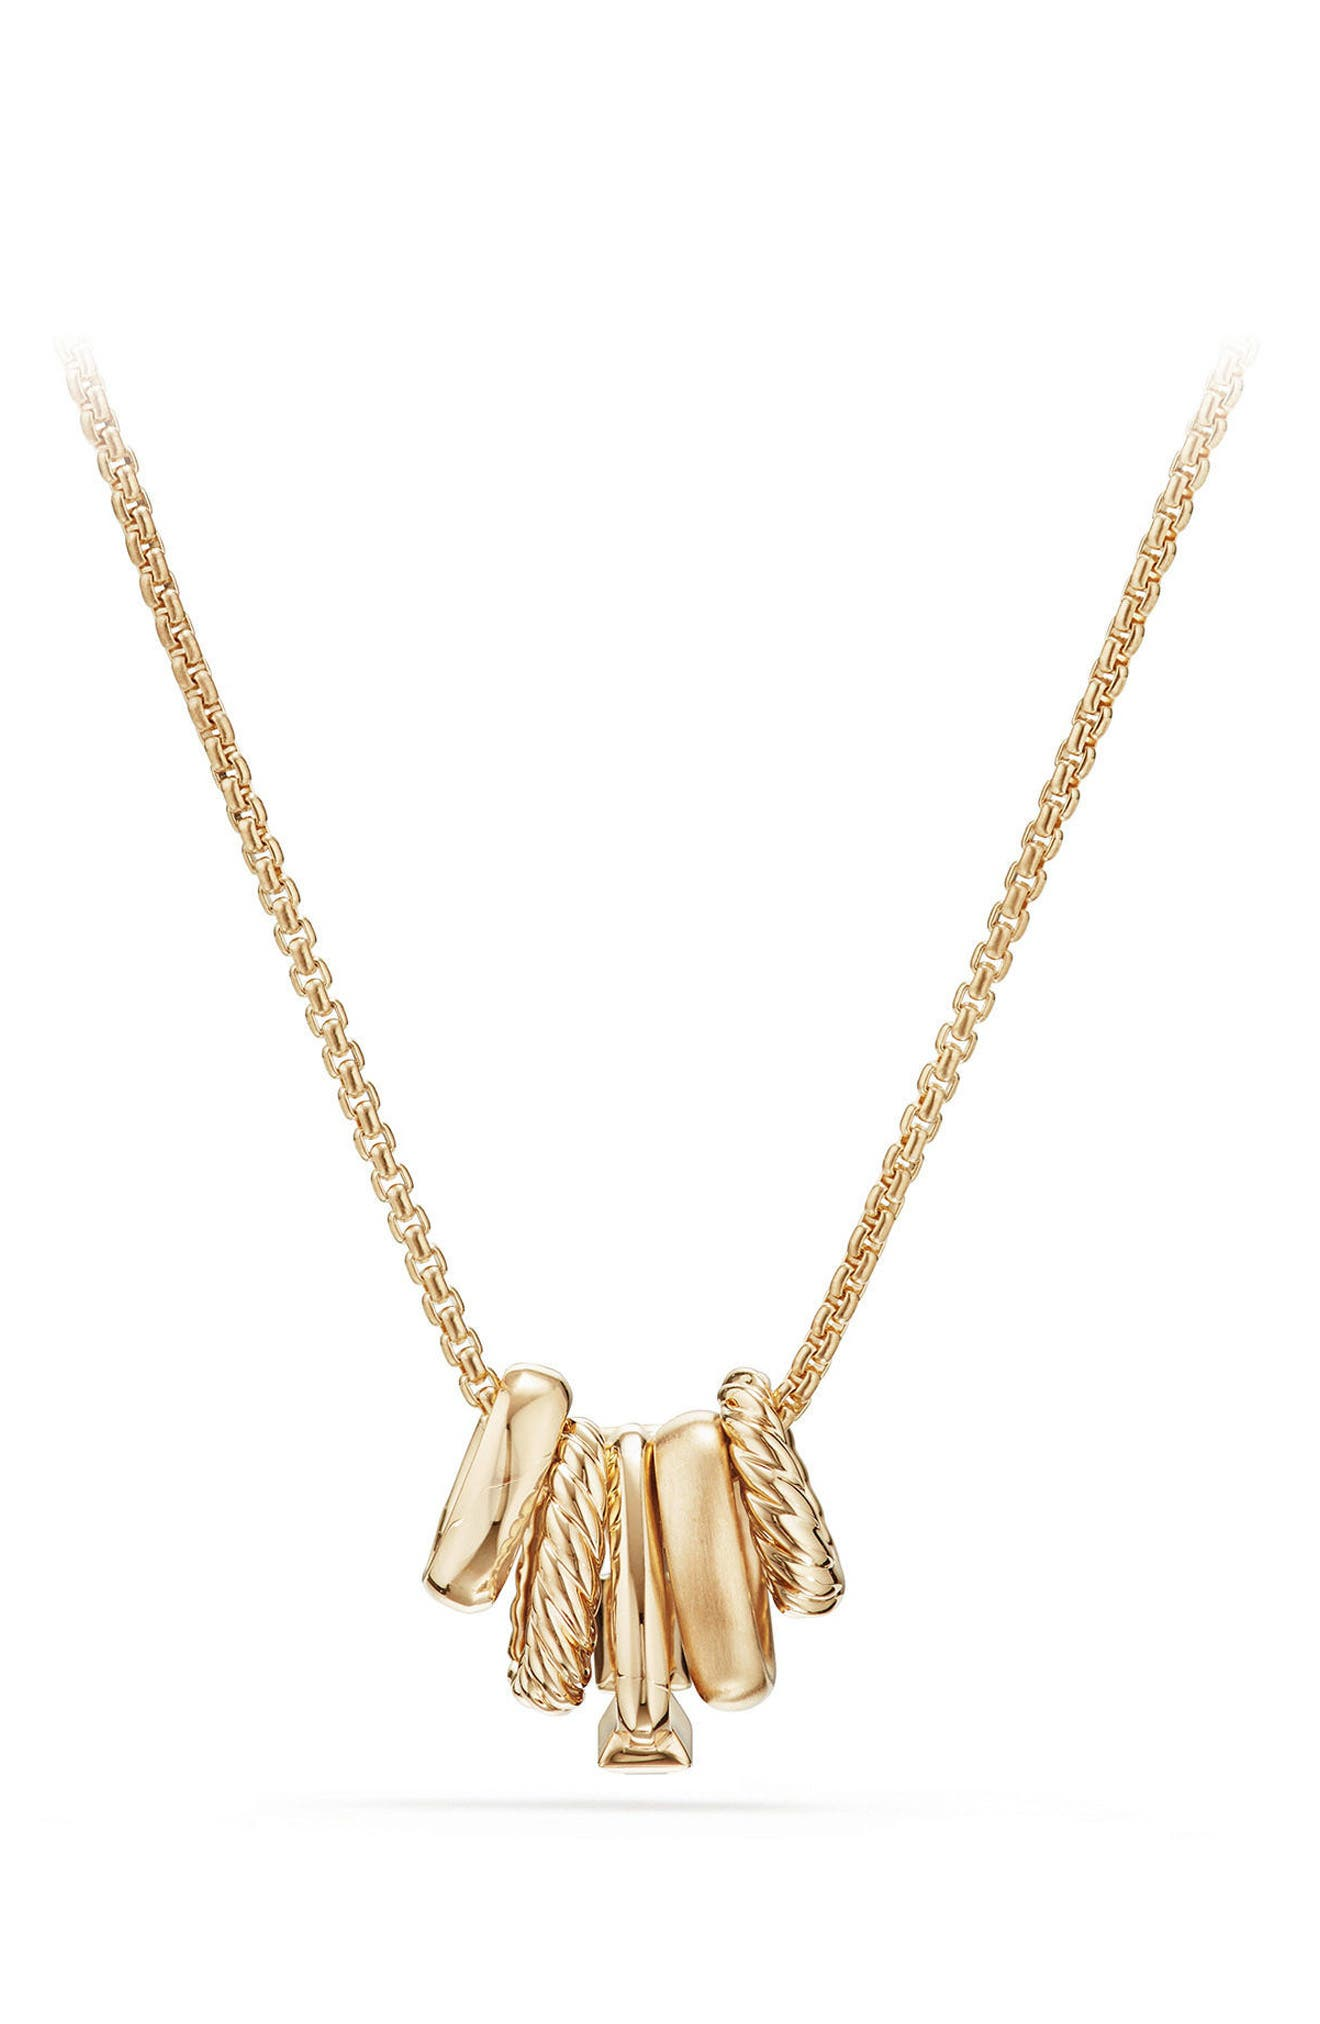 Stax Pendant Necklace with Diamonds in 18K Gold,                             Alternate thumbnail 3, color,                             BLACK SPINEL